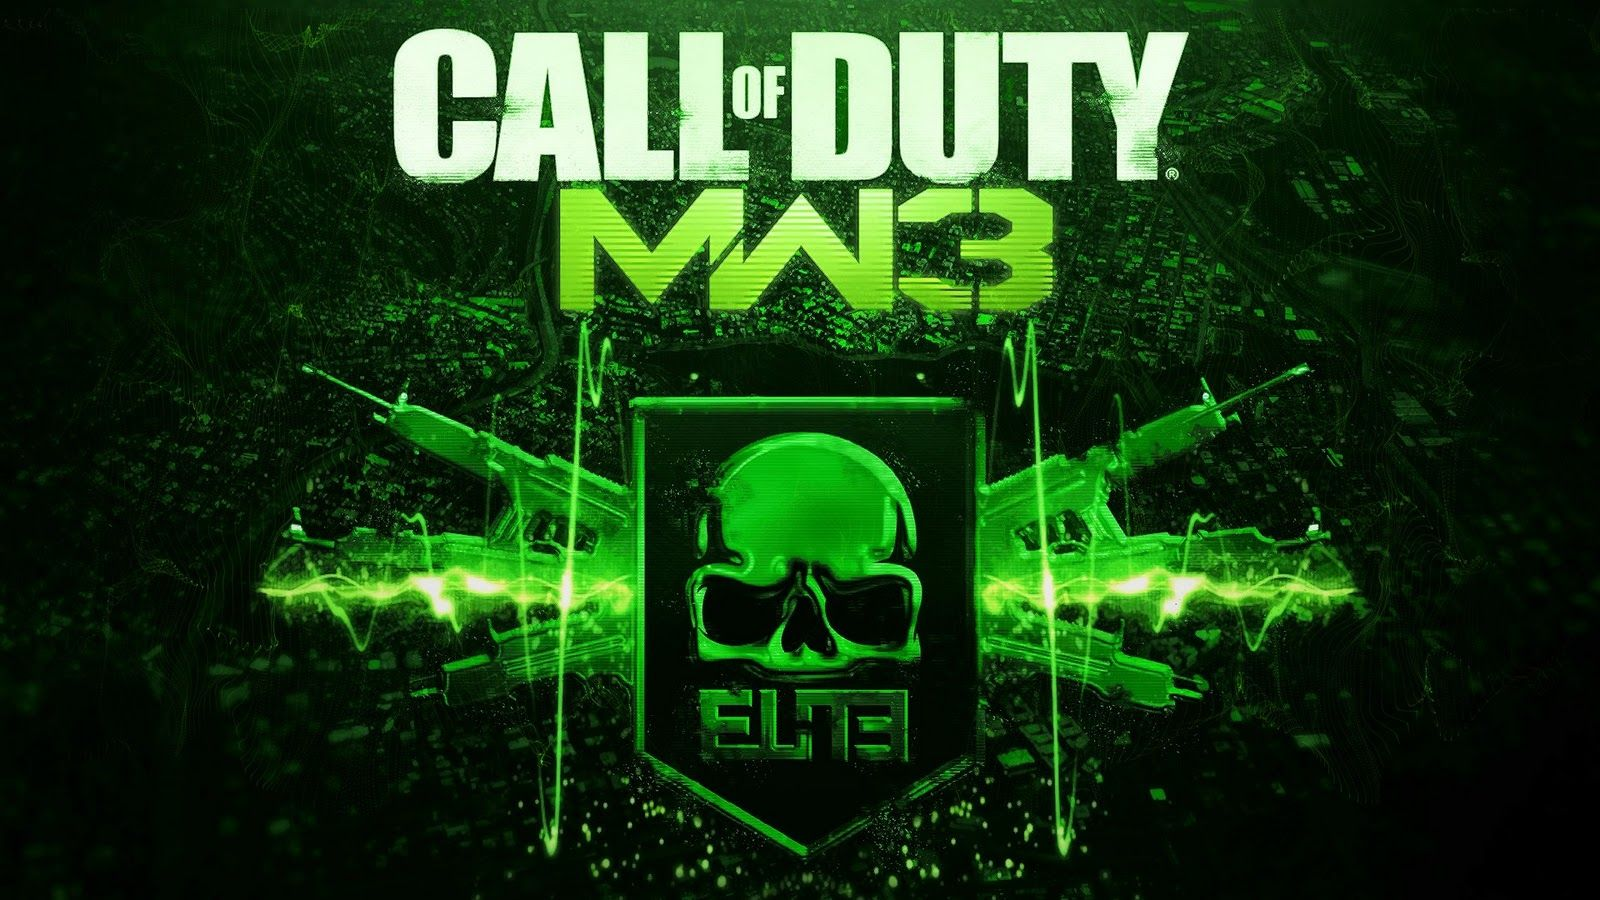 Call Of Duty Mw3 Wallpaper Games Wallpapers Computer Wallpaper